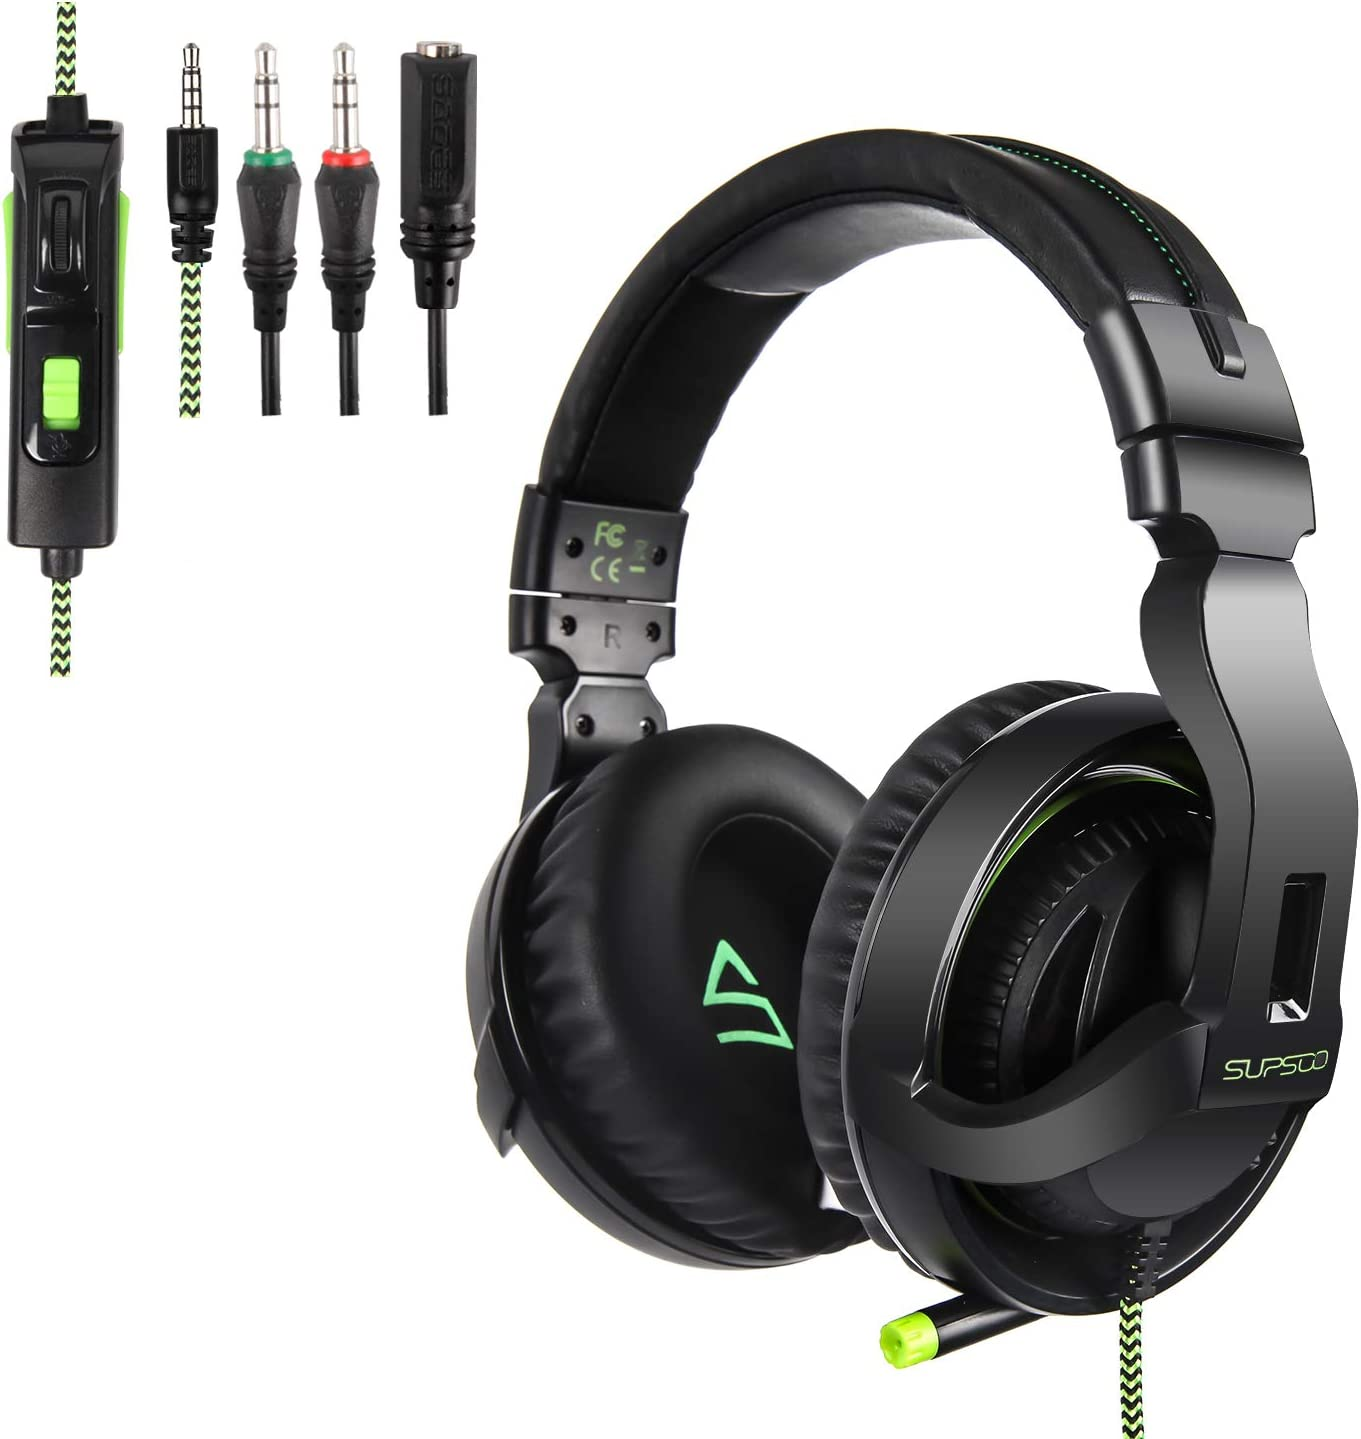 Supsoo Gaming Headset for Xbox ONE/PS4/PC Noise Cancelling Headphones Surround Sound & Volume Control - G822